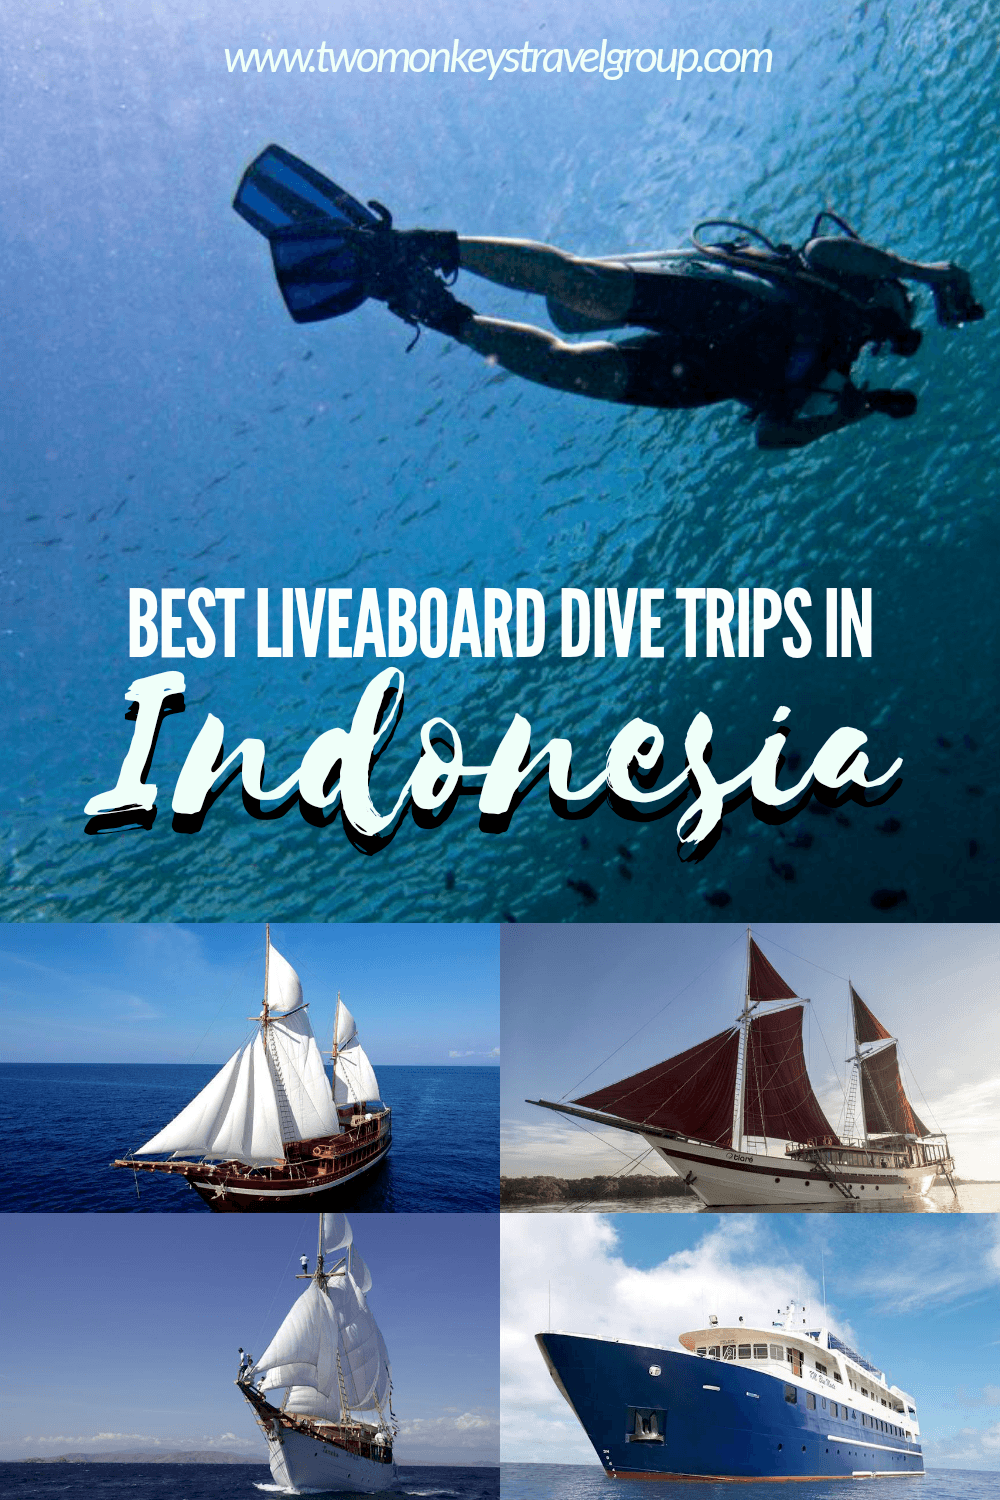 9 Best Liveaboard Dive Trips in Indonesia [From Budget to Luxury Boats]